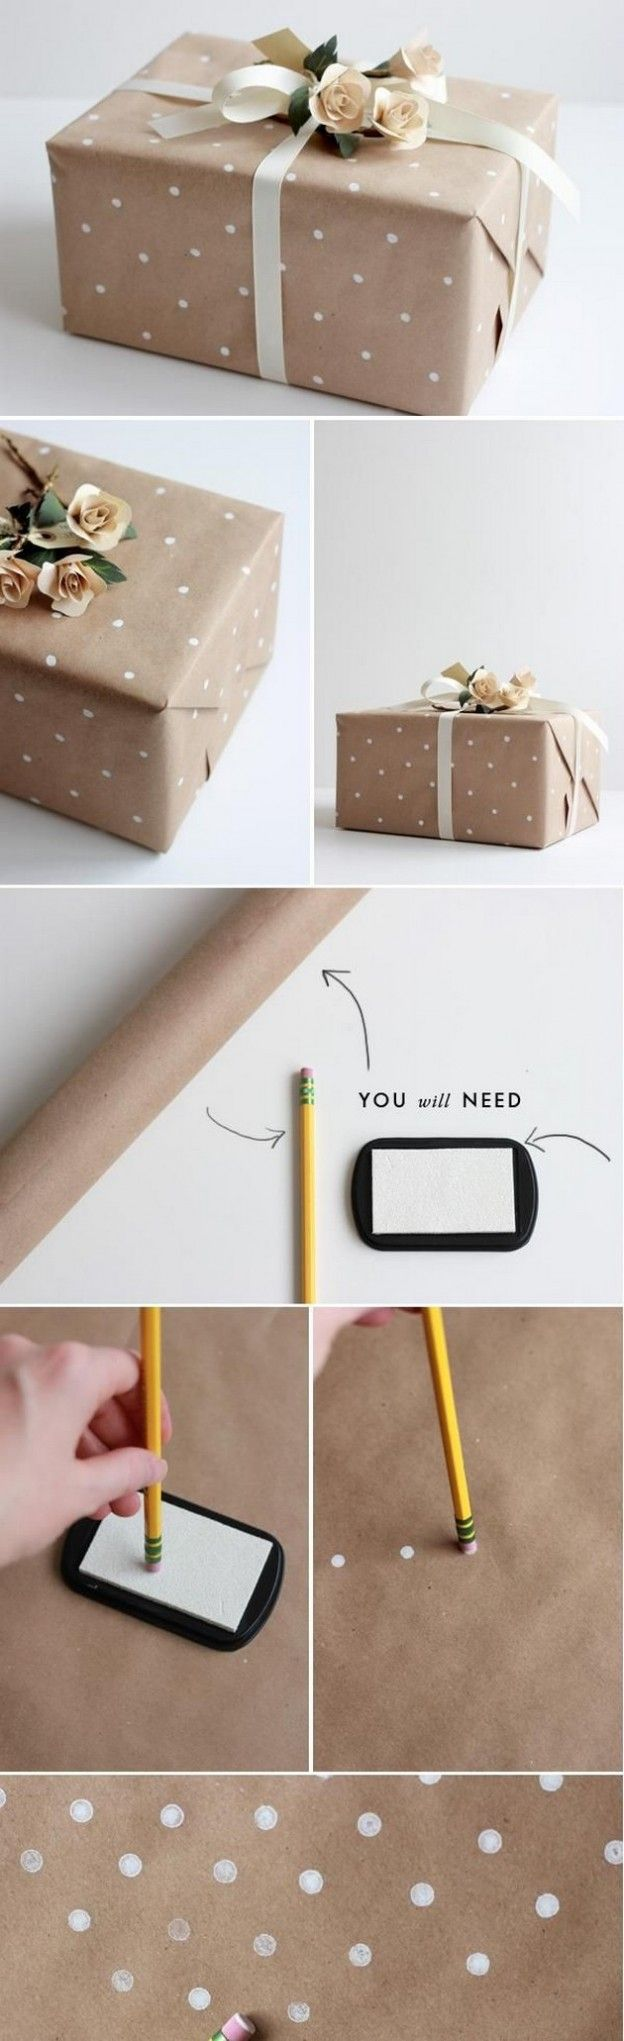 diy wedding present ideas | Leave a Reply Cancel reply